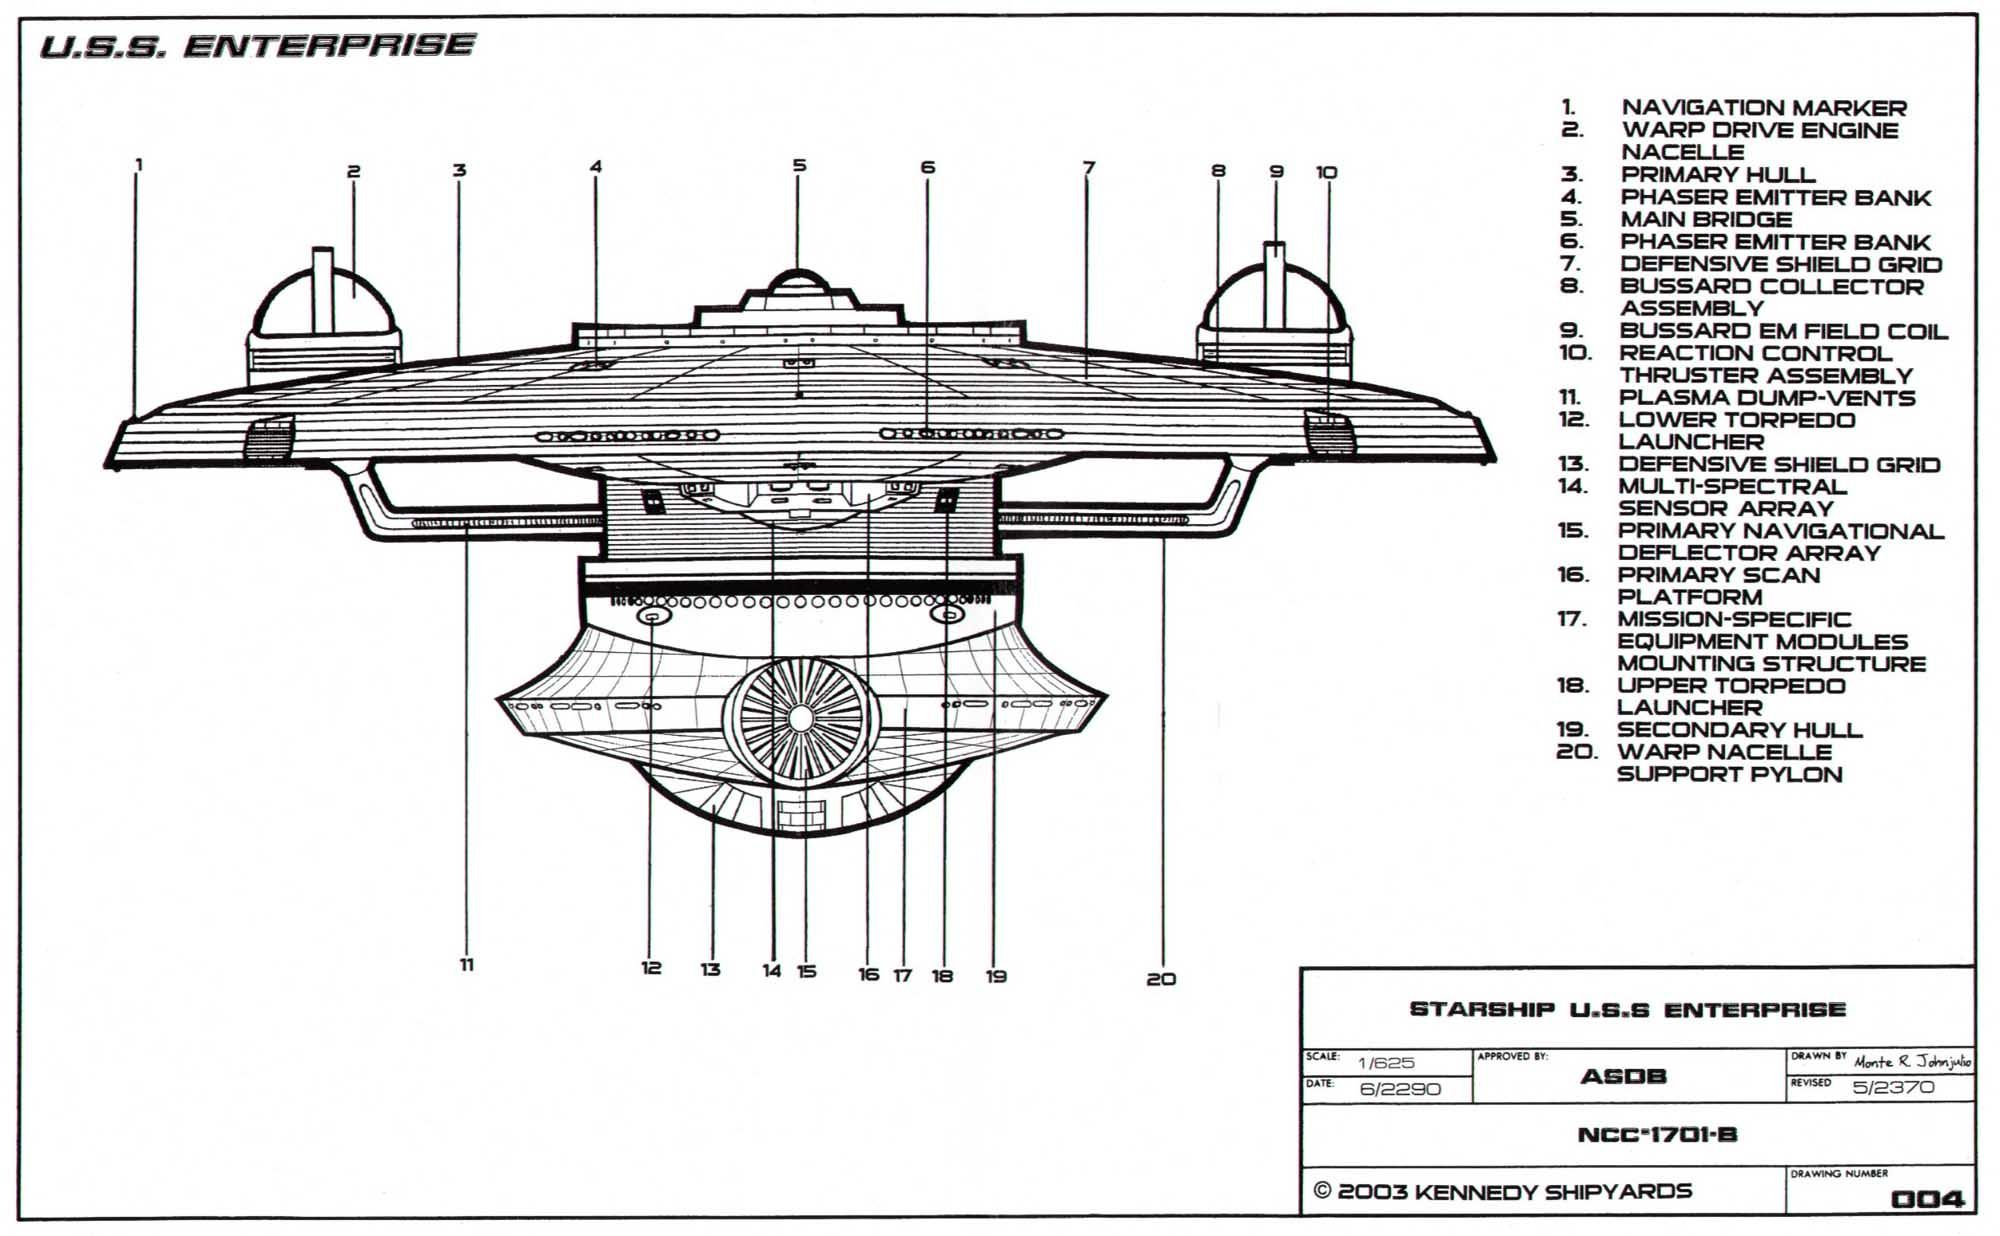 Bow Side Schematic Of The Excelsior Class Enterprise Ncc